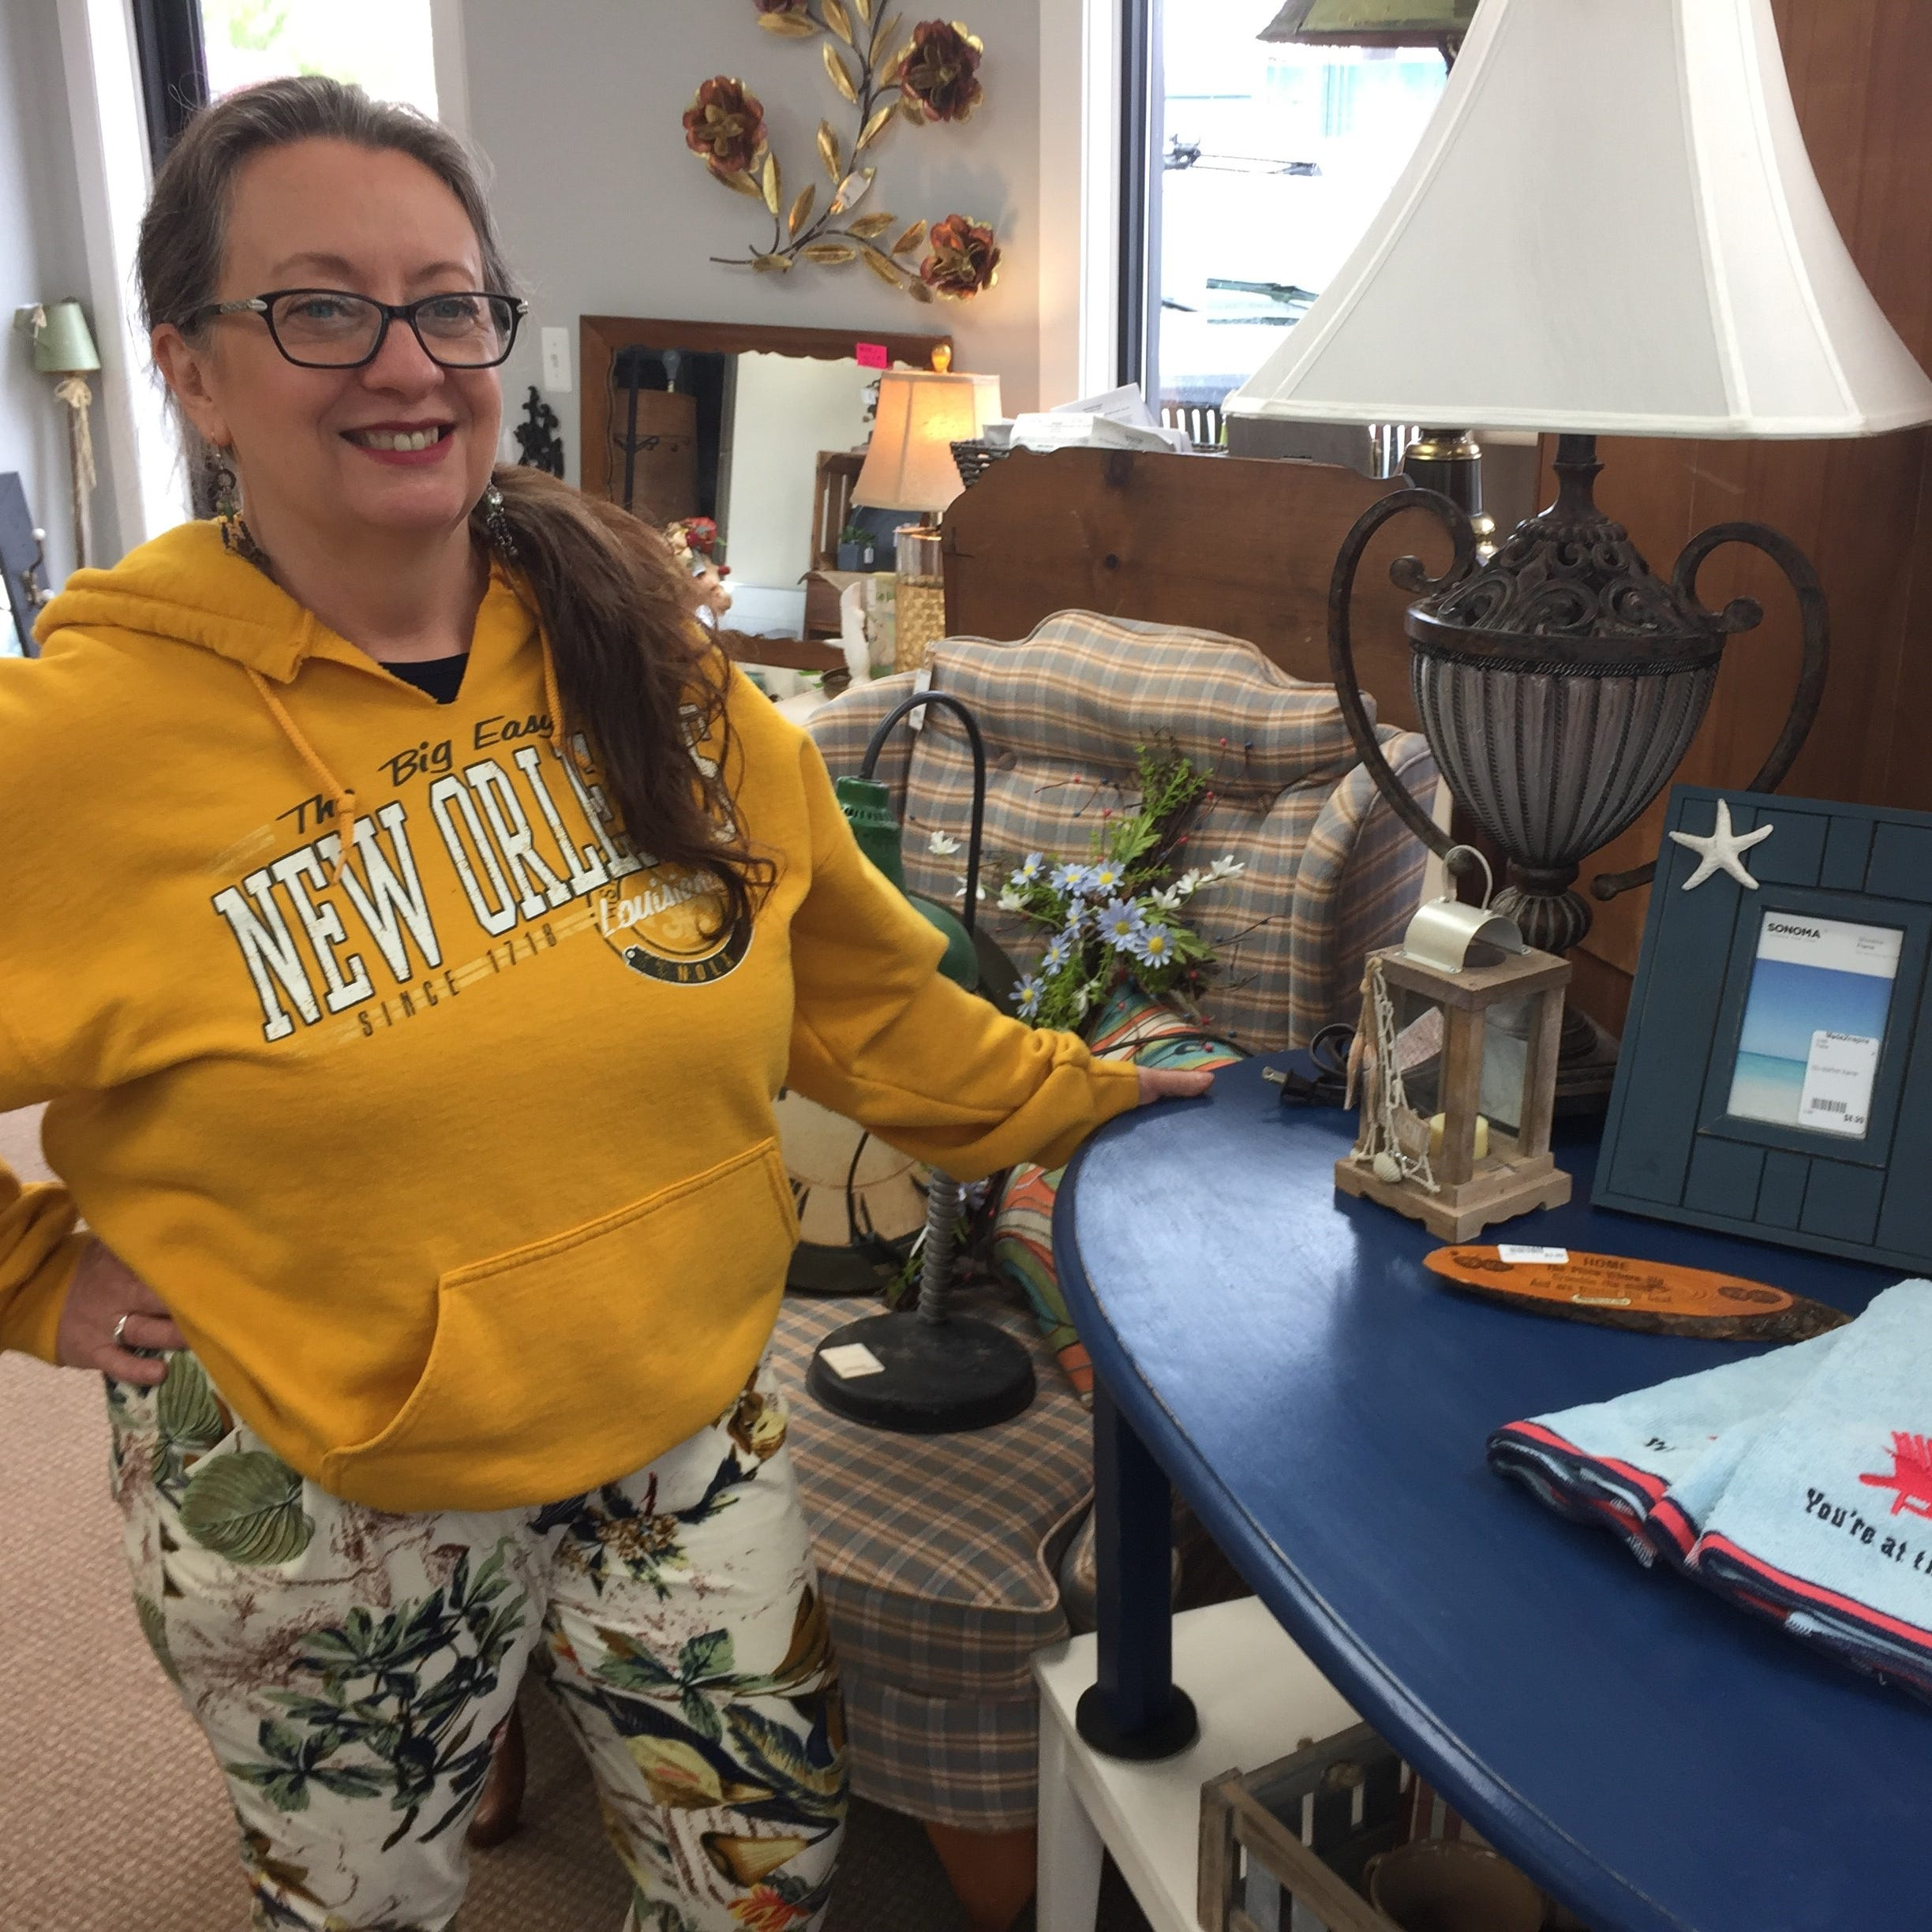 Consignment shop filled with local treasures, art moves to Howell